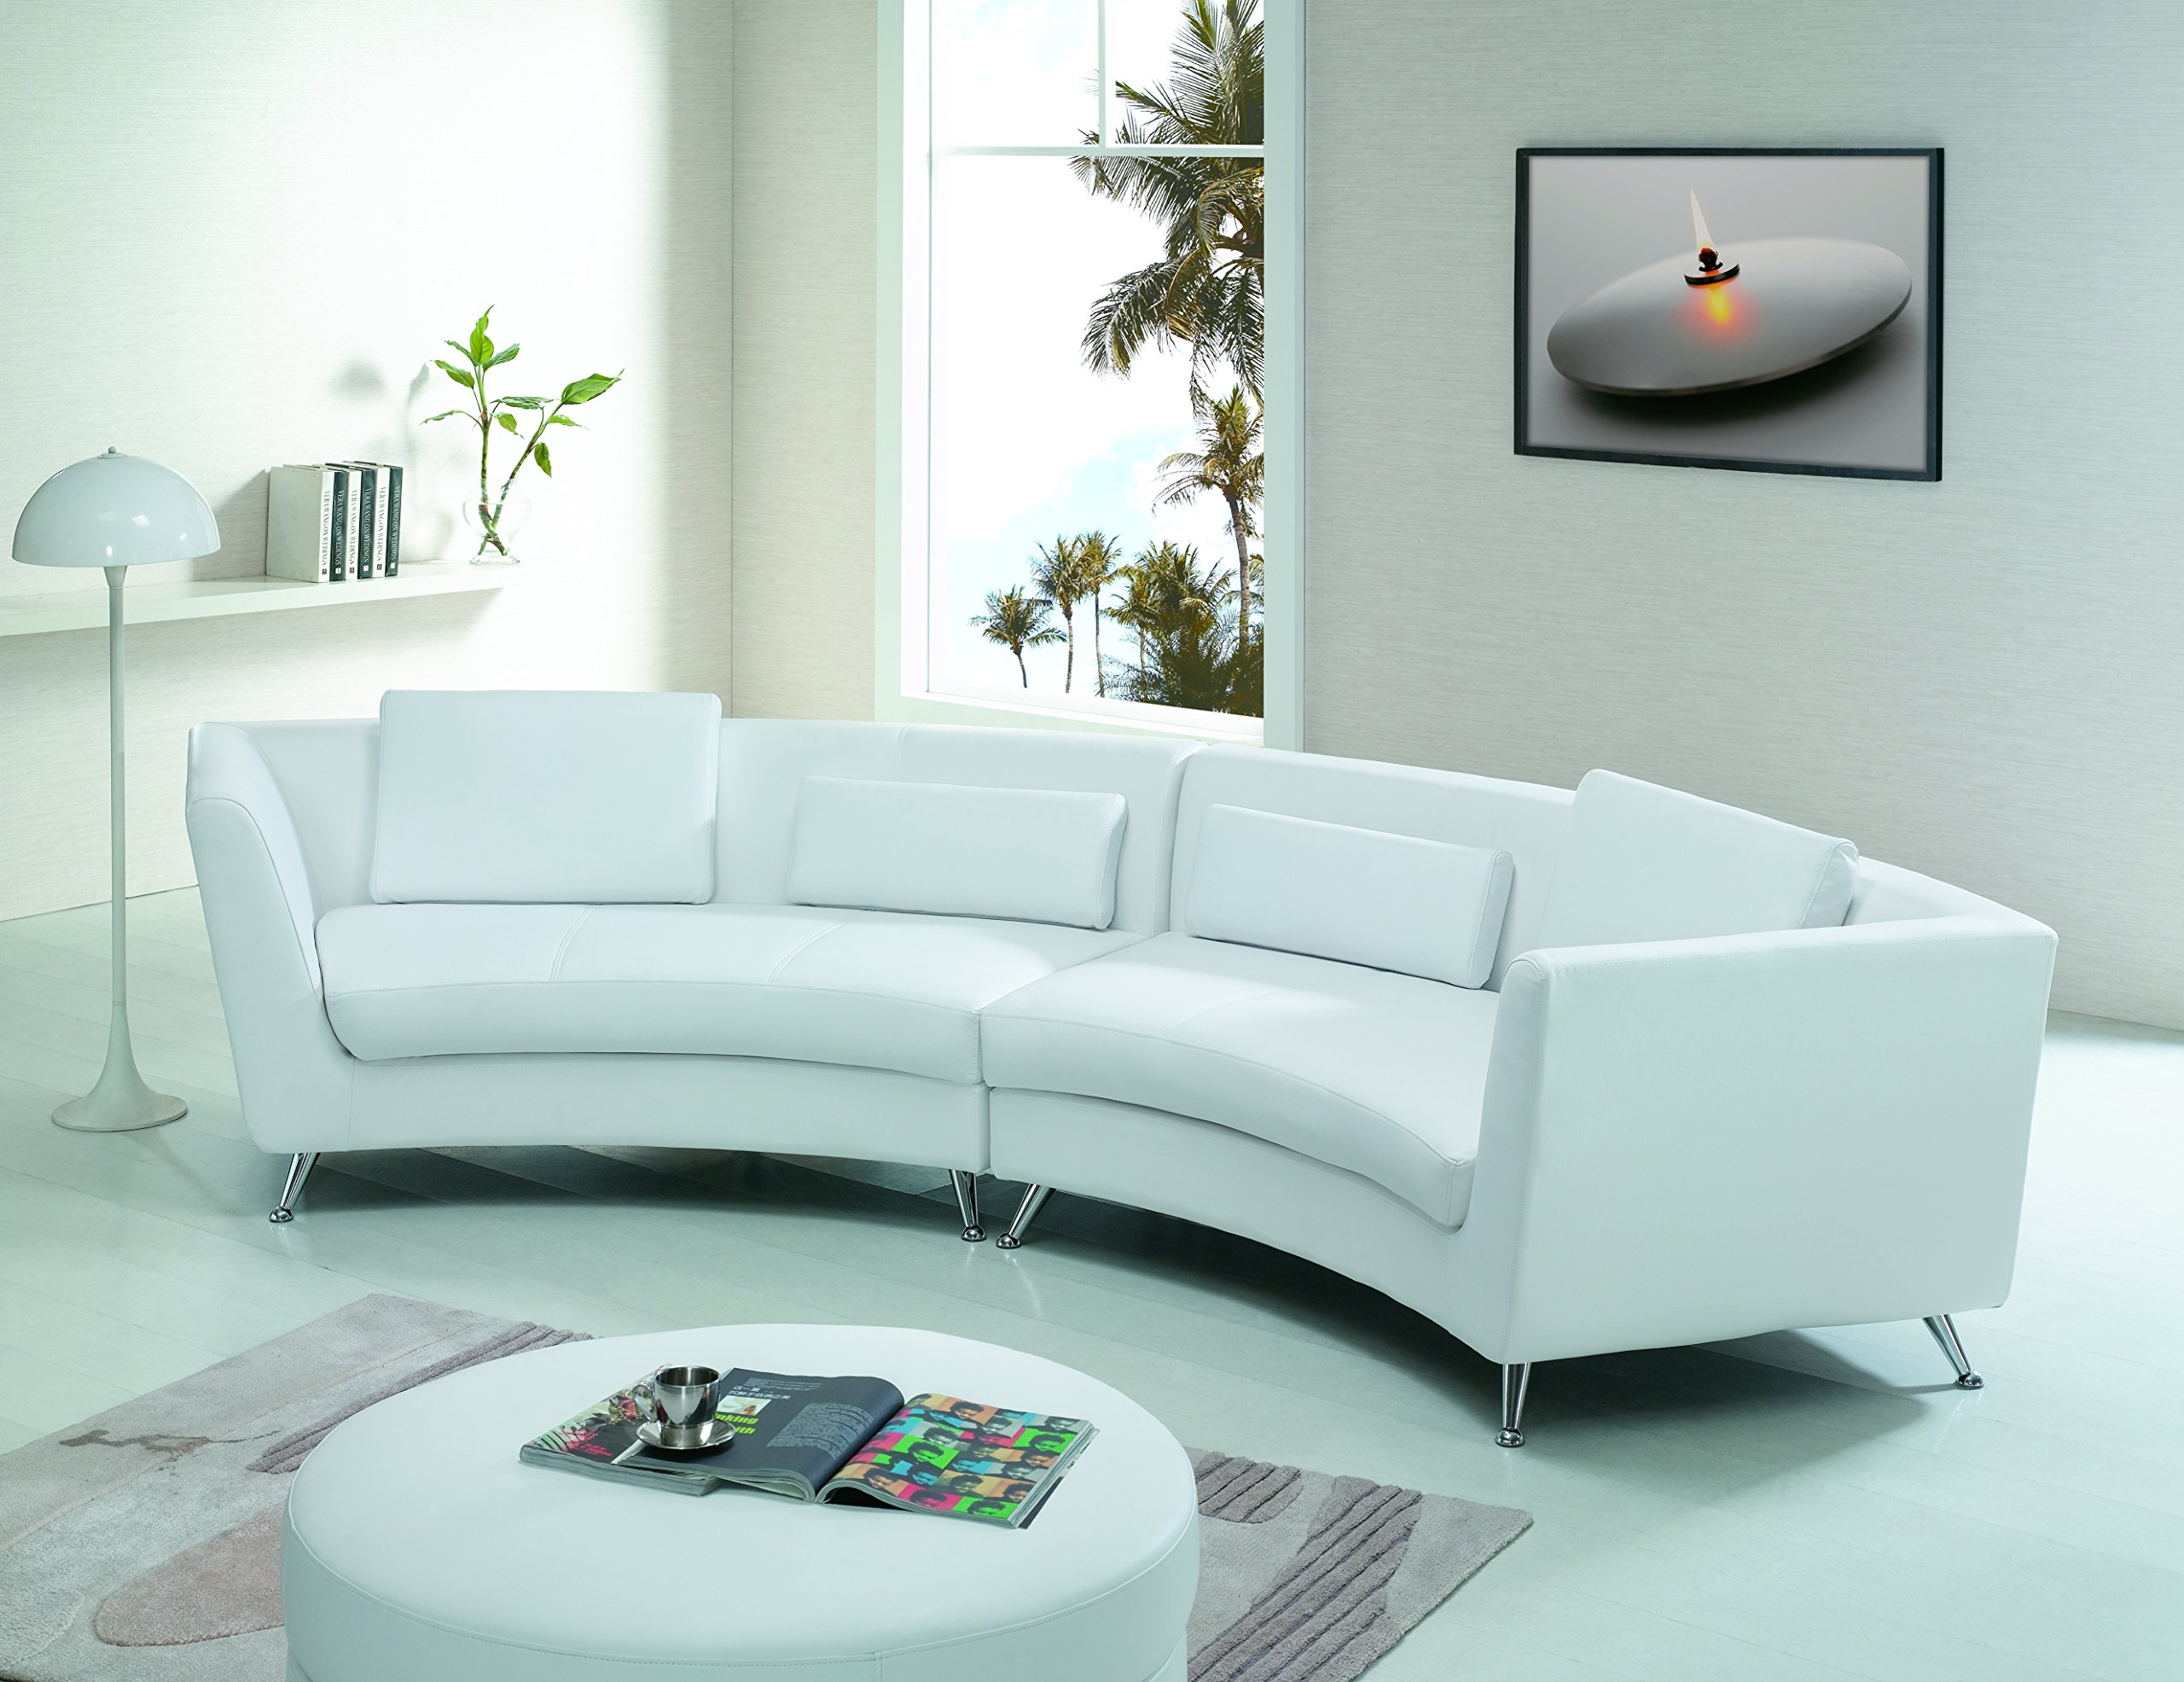 Buy Modern Line Furniture 8004b G9 Contemporary Leather Long Curved